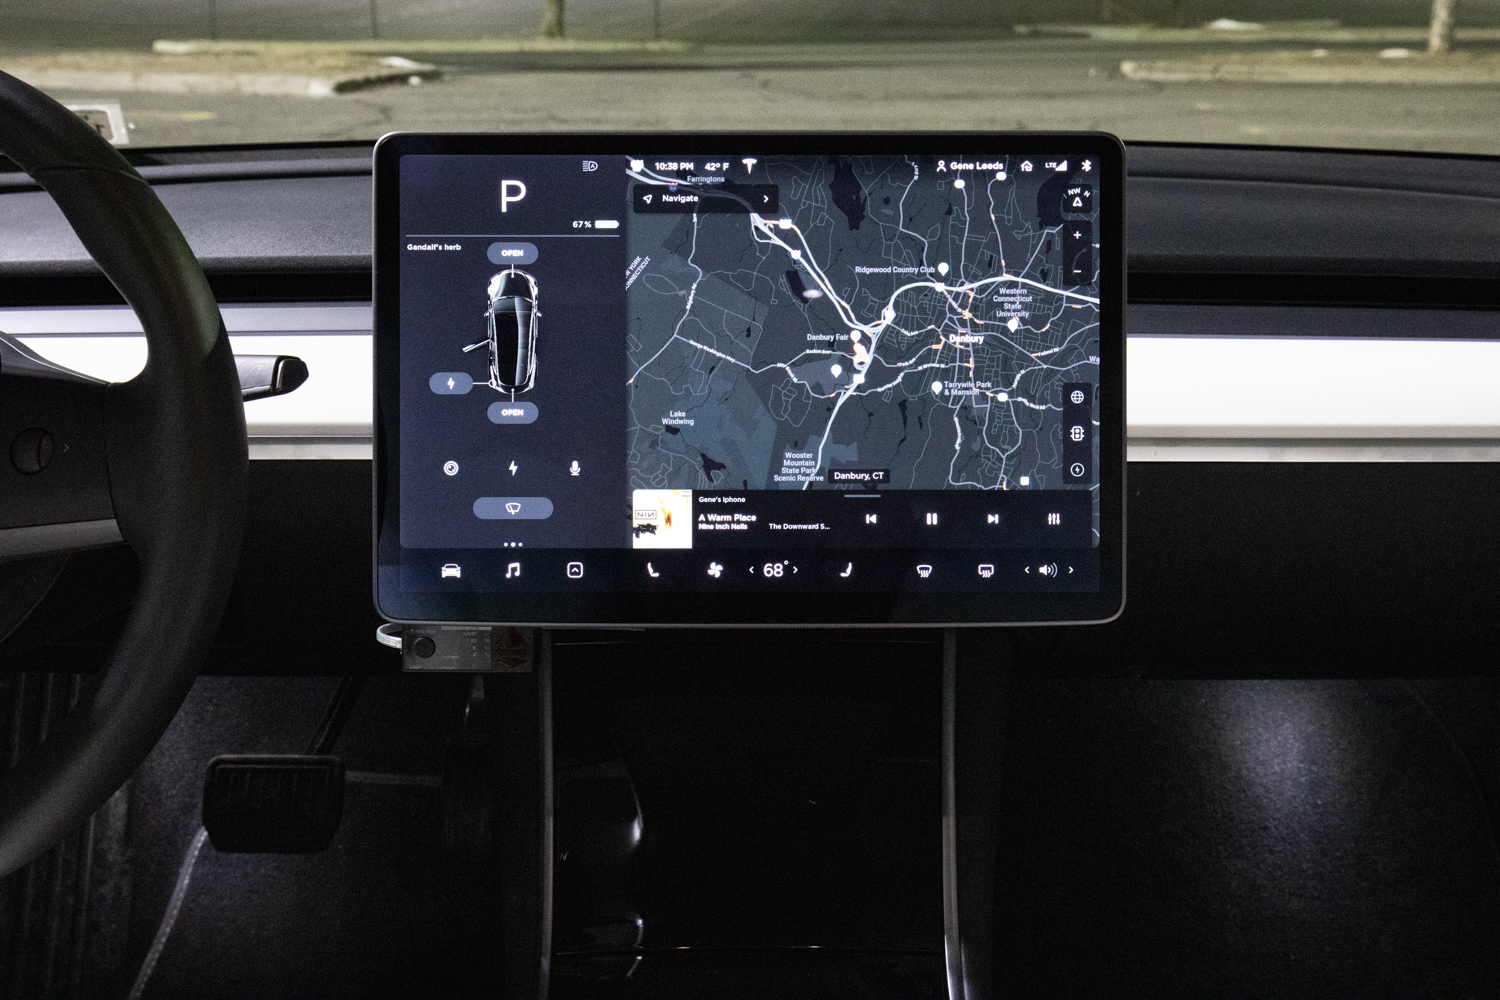 Tesla Model 3 AWD infotainment screen